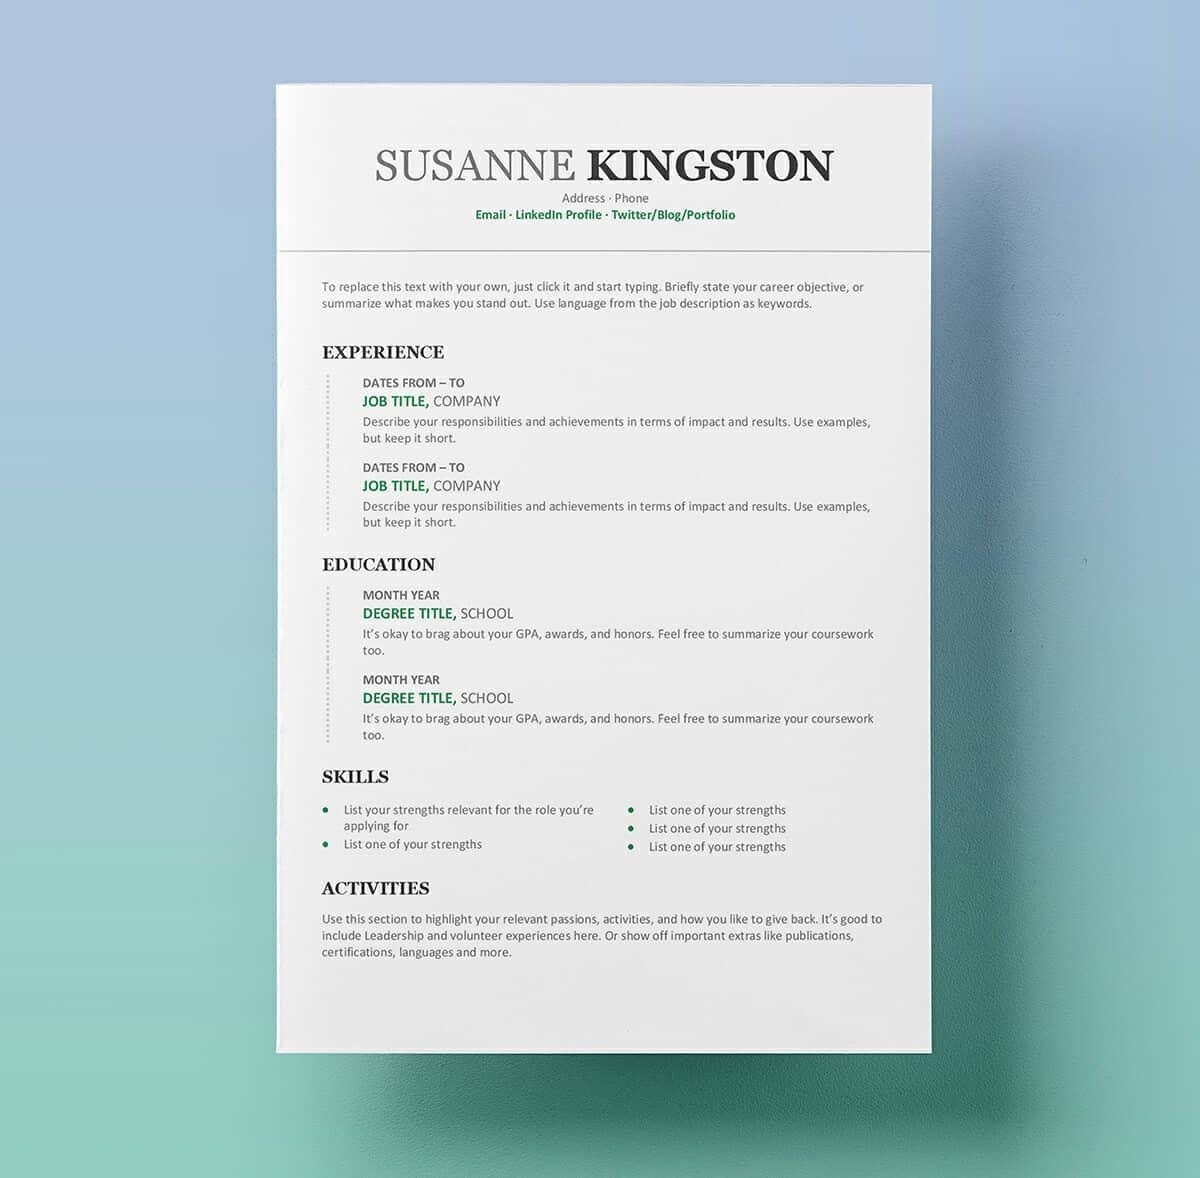 009 Unusual Professional Resume Template Free Download Word Idea  Cv 2020 Format With PhotoFull